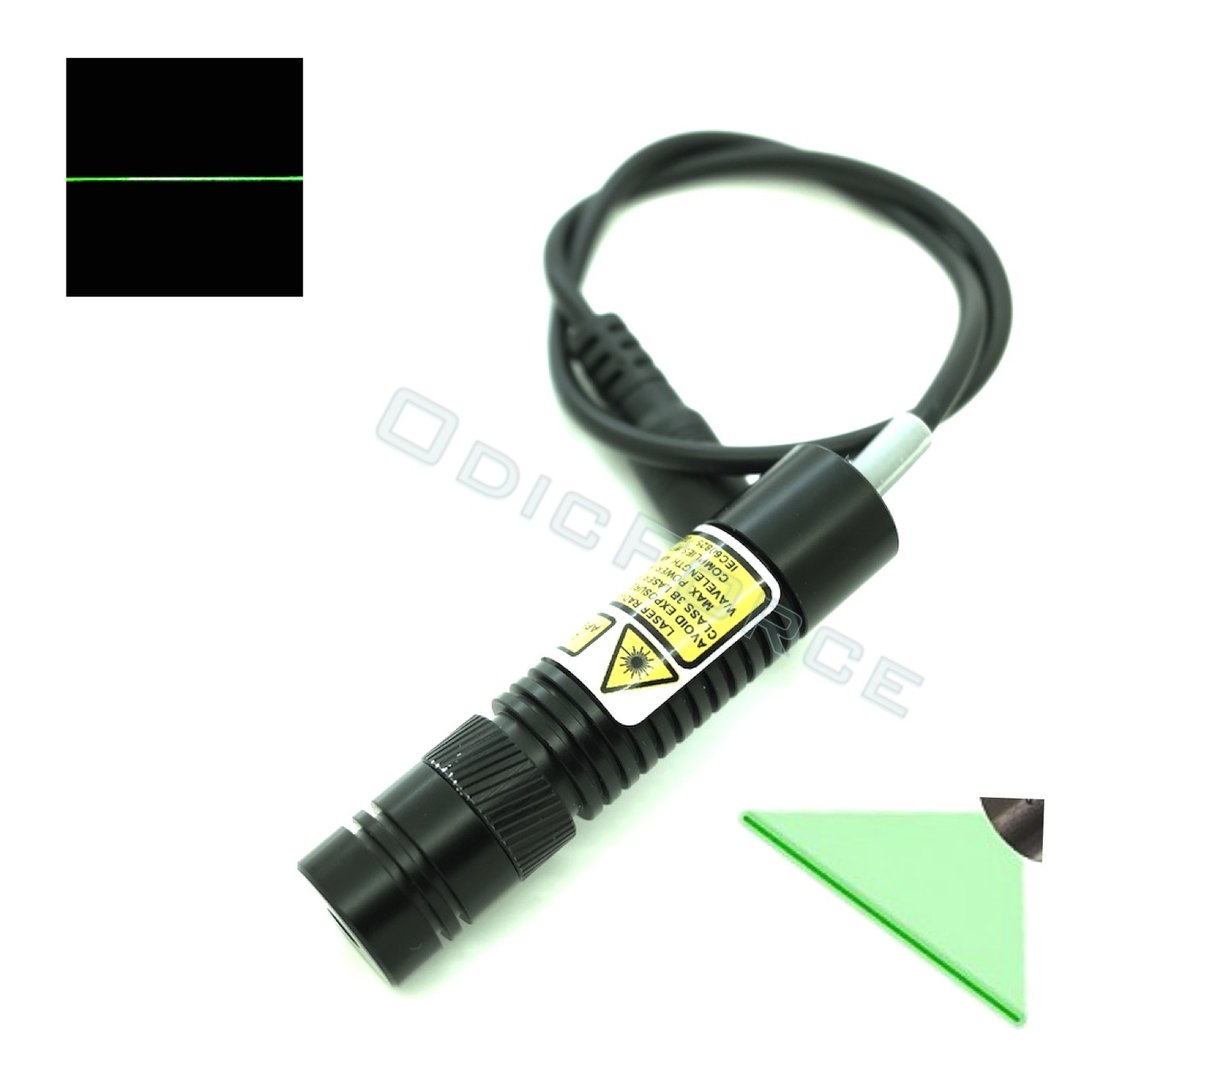 50mW Green (520nm) Adjustable Locking Focus Direct Diode Module Line Pattern (16mm, 3-5V)